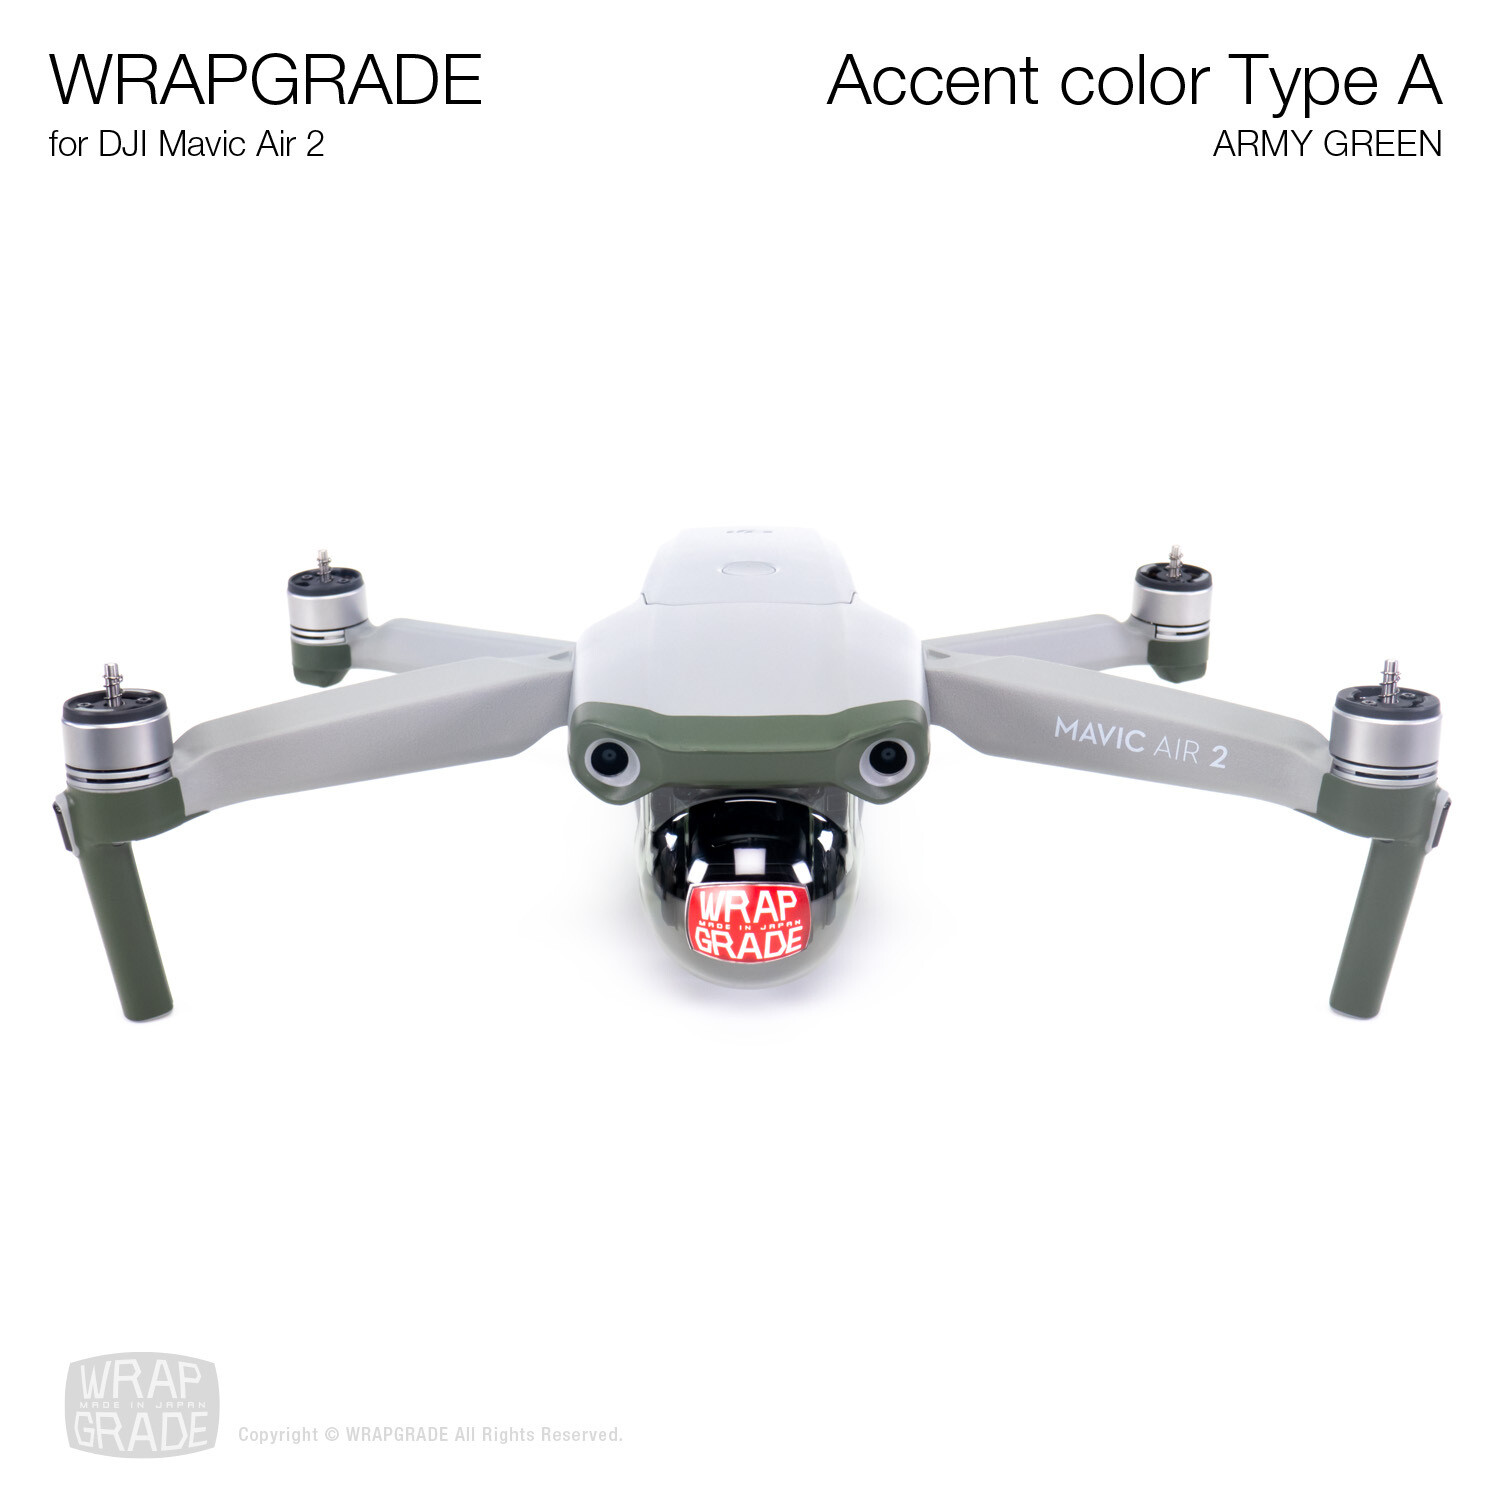 Wrapgrade for DJI Mavic Air 2 | Accent Color A (ARMY GREEN)